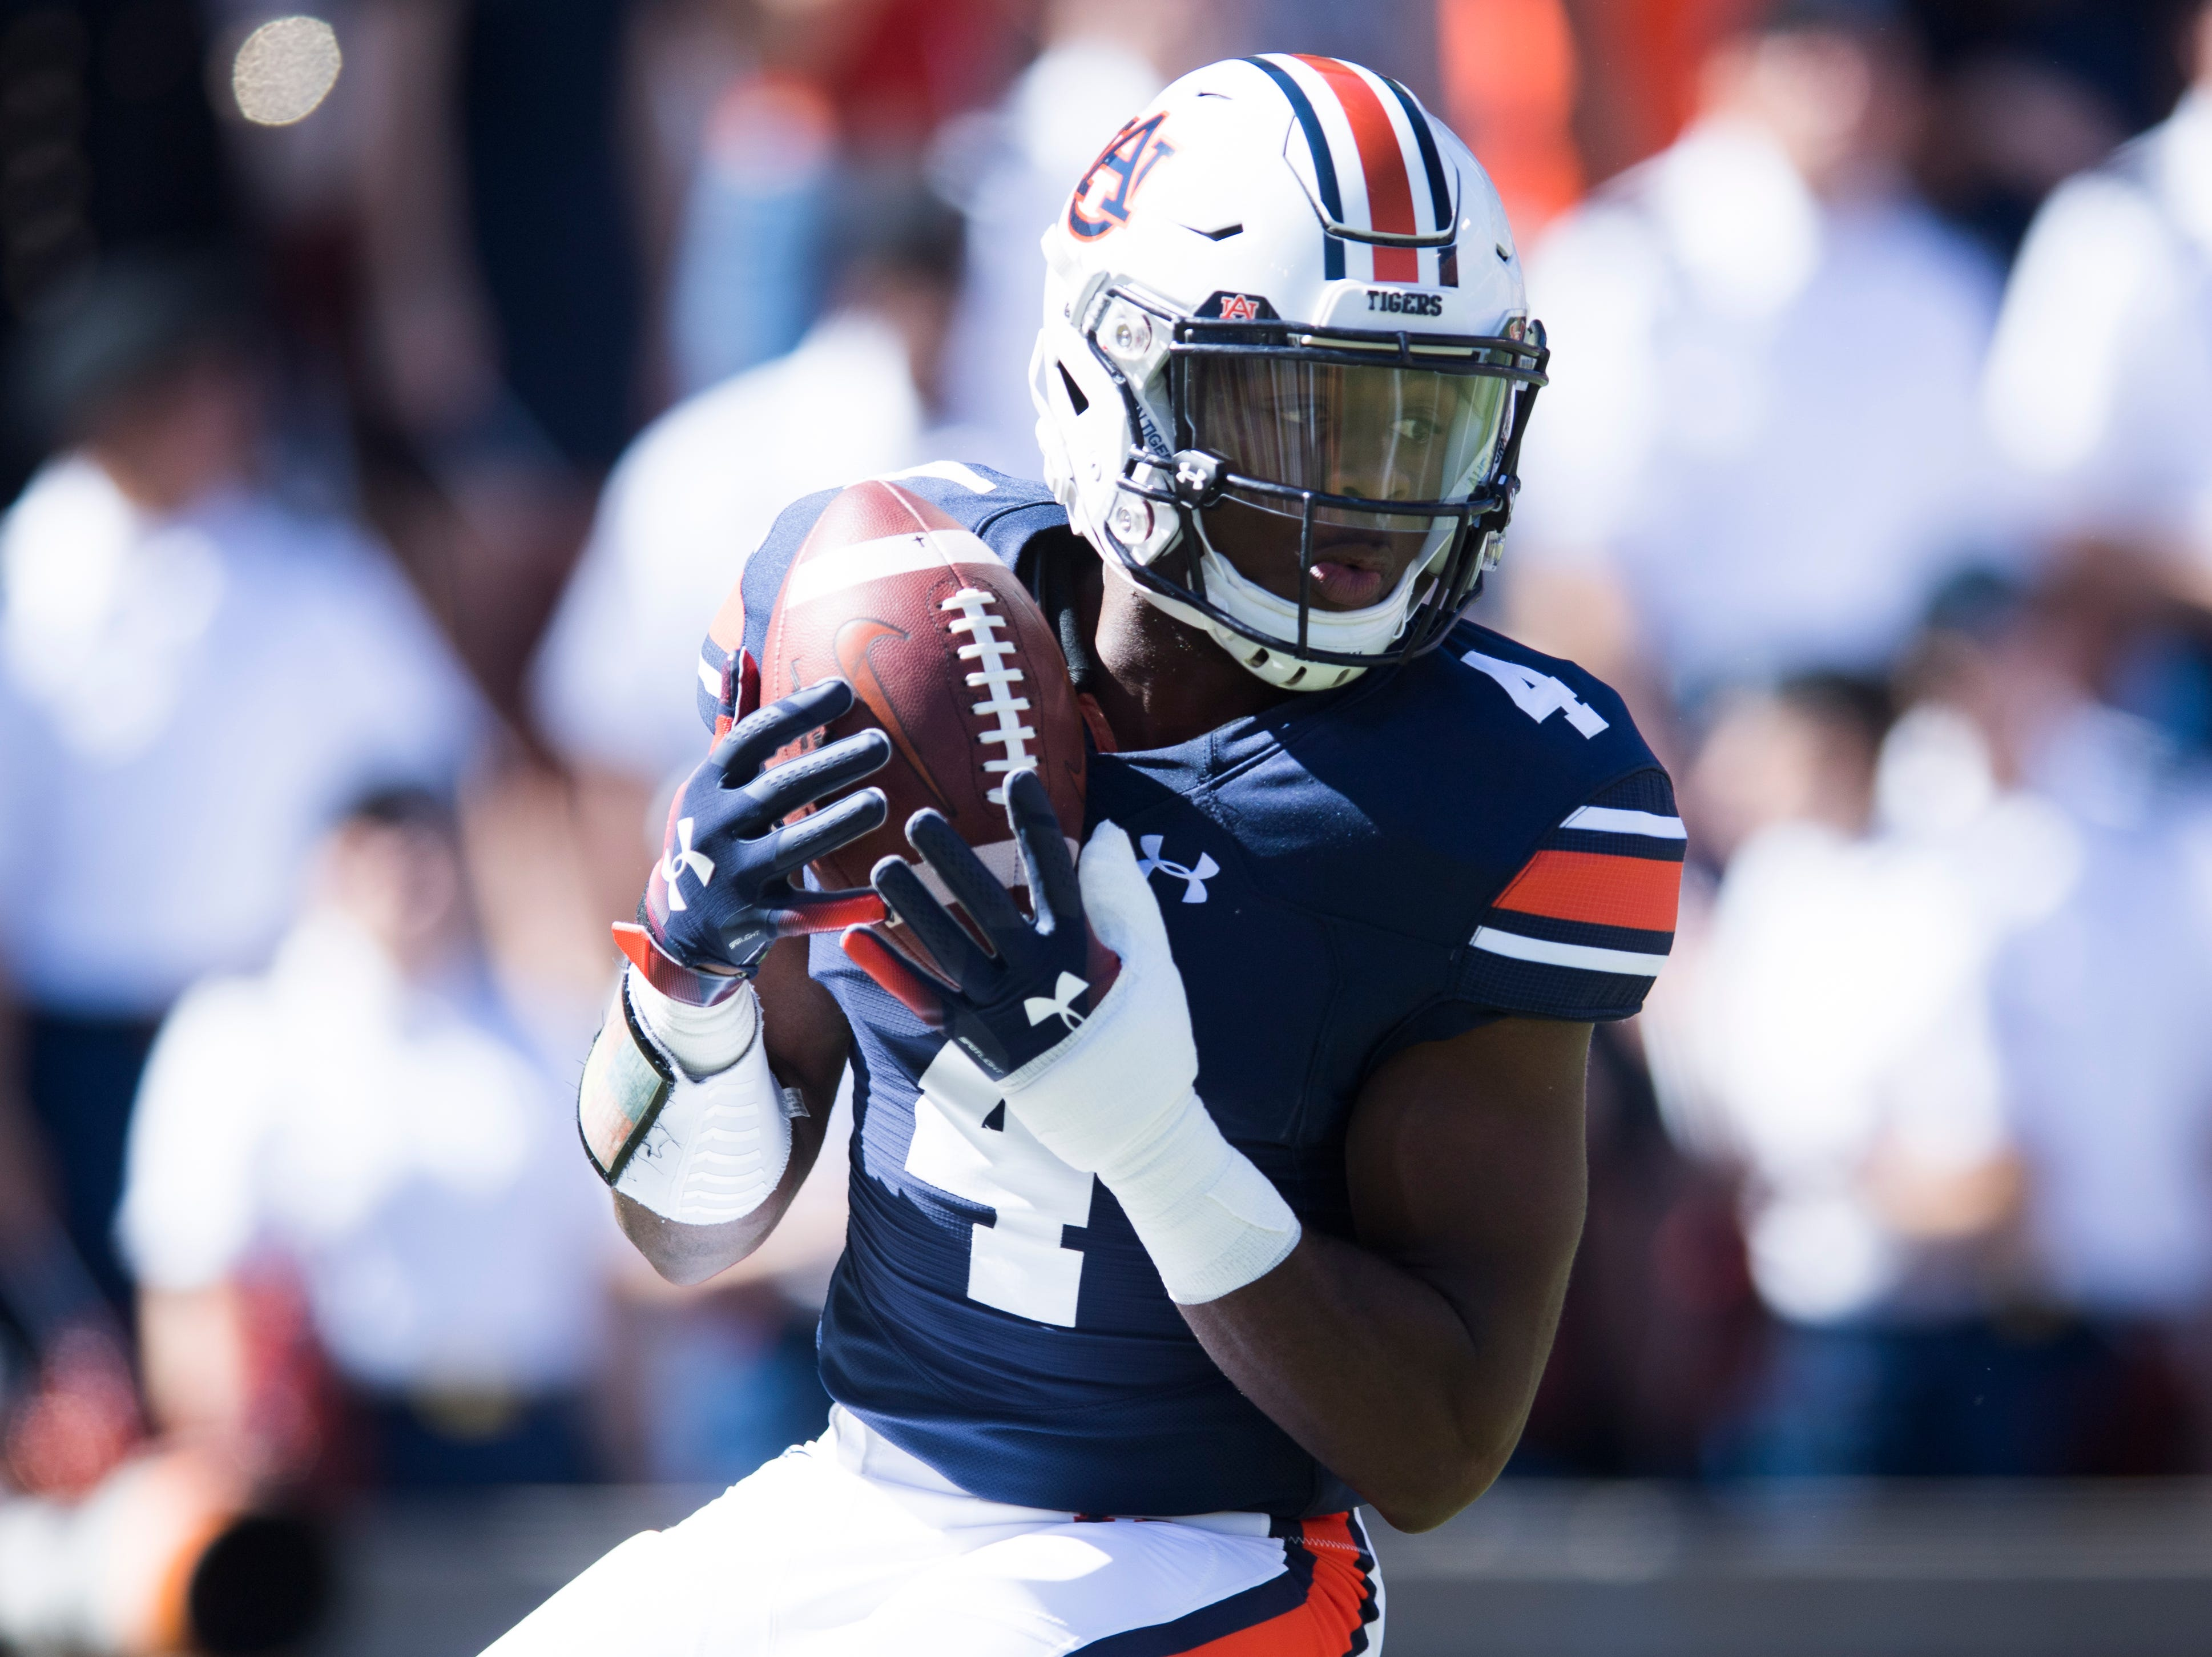 Auburn wide receiver Noah Igbinoghene (4) makes a catch during a game between Tennessee and Auburn at Jordan-Hare Stadium in Auburn, Alabama on Saturday, October 13, 2018.